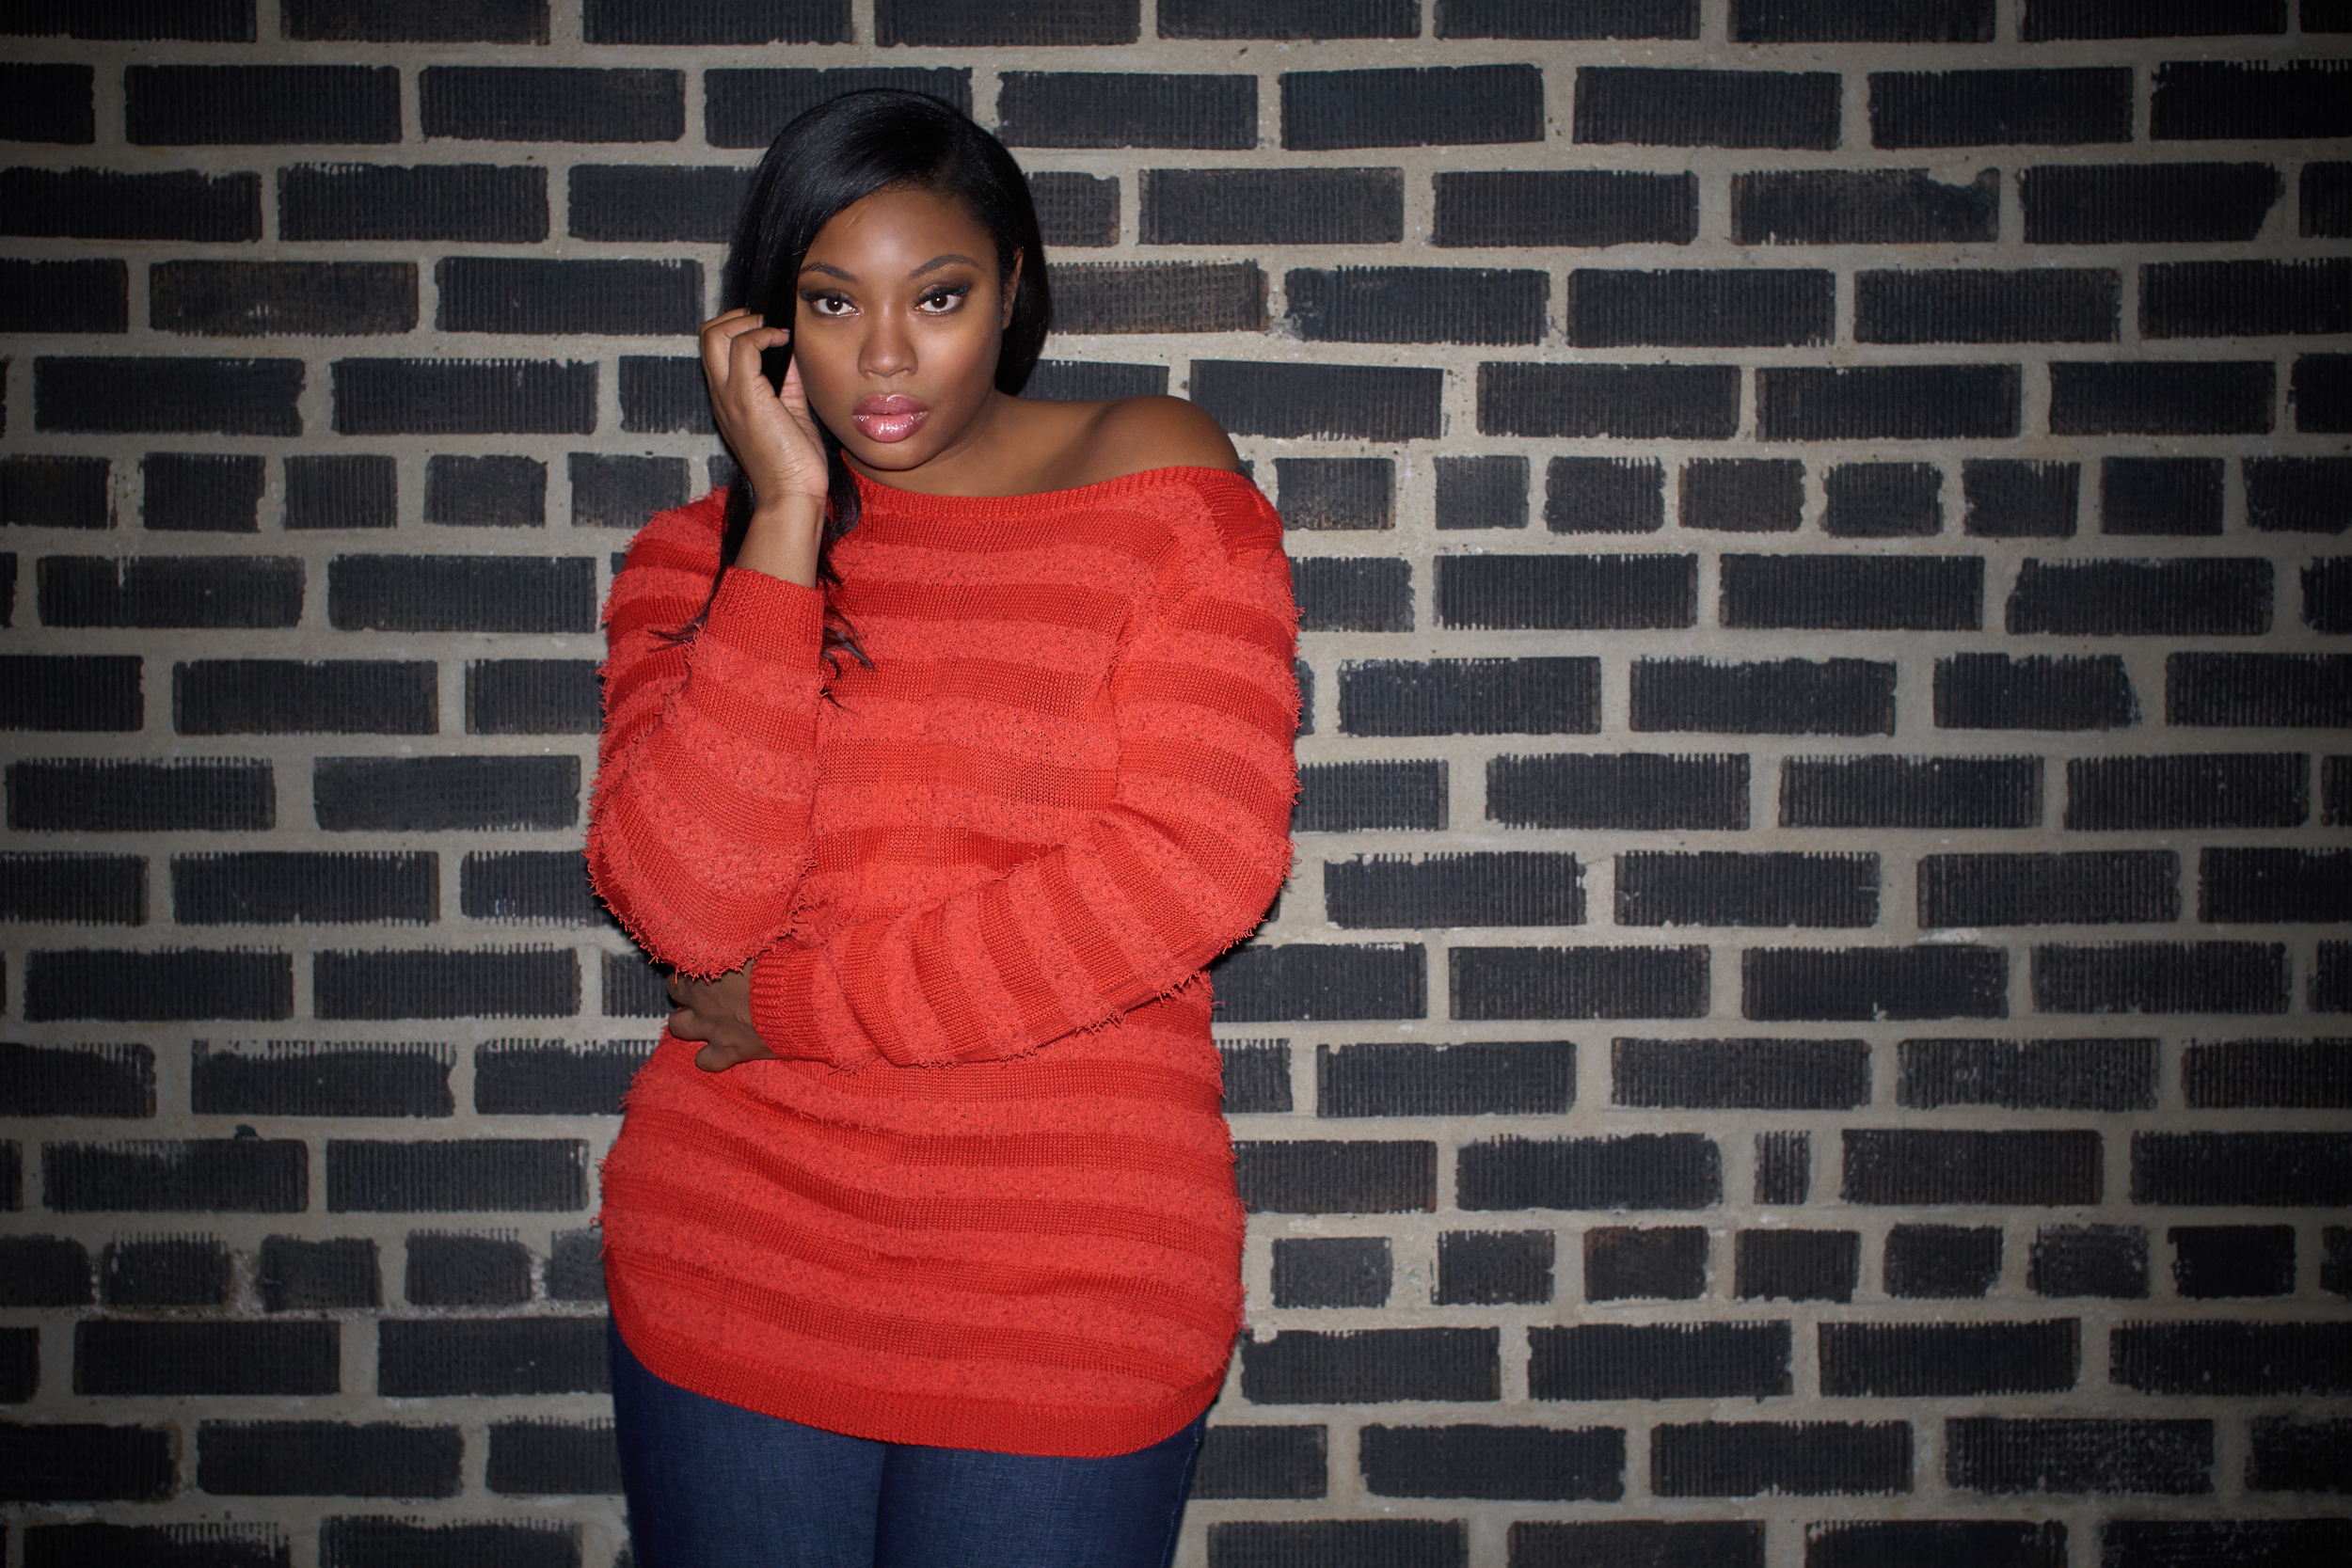 "Liris stopped in!!!   ...and why do we love Liris???  I remember first seeing Liris in the 90's, maybe '98 or '99 and thinking ""where do they find these women?  She was a really tall beautiful woman who kinda seemed unreal. We have always had mutual acquaintances but hadn't met in person.  So I only had previous experiences with other people that fit her ""description"" (acting like tools).  since that time, I have literally seen Liris all over the place. Campaigns, Television, Movies, etc. and one would think that this kind of success would go to the head. This is what separates Liris from others.  The more we talk... the more I realize that she does not even know that she is a frikkin Supermodel.  She is aware of her job and that she is really good at it, but as far as forgetting where she is from... Not one bit.  Her 'Life of a Working Model' series (boot camps and instructional intensives) help people from all walks of life get an insight to  what makes a woman a model .  She does it with the models in mind.  It is NOT a scam where she is just looking to get money.  She is genuinely looking to help people.  Like Tyra... Like Naomi!! Of plus sized modeling, she IS Naomi, and still... I recently saw her do a friend a favor and walk in her show.  That is dope.  That is inspirational!  Isn't that the reason for models?       mod·el   ˈmädl/        a system or thing used as an example to follow or imitate.      I think that the fact that Liris pays it forward makes her one of my favorites.  The fact that you can 'Facebook' or talk to her via Instagram speaks volumes.  who else do you know that does that???   Go check her out!   http://liriscrosse.com"